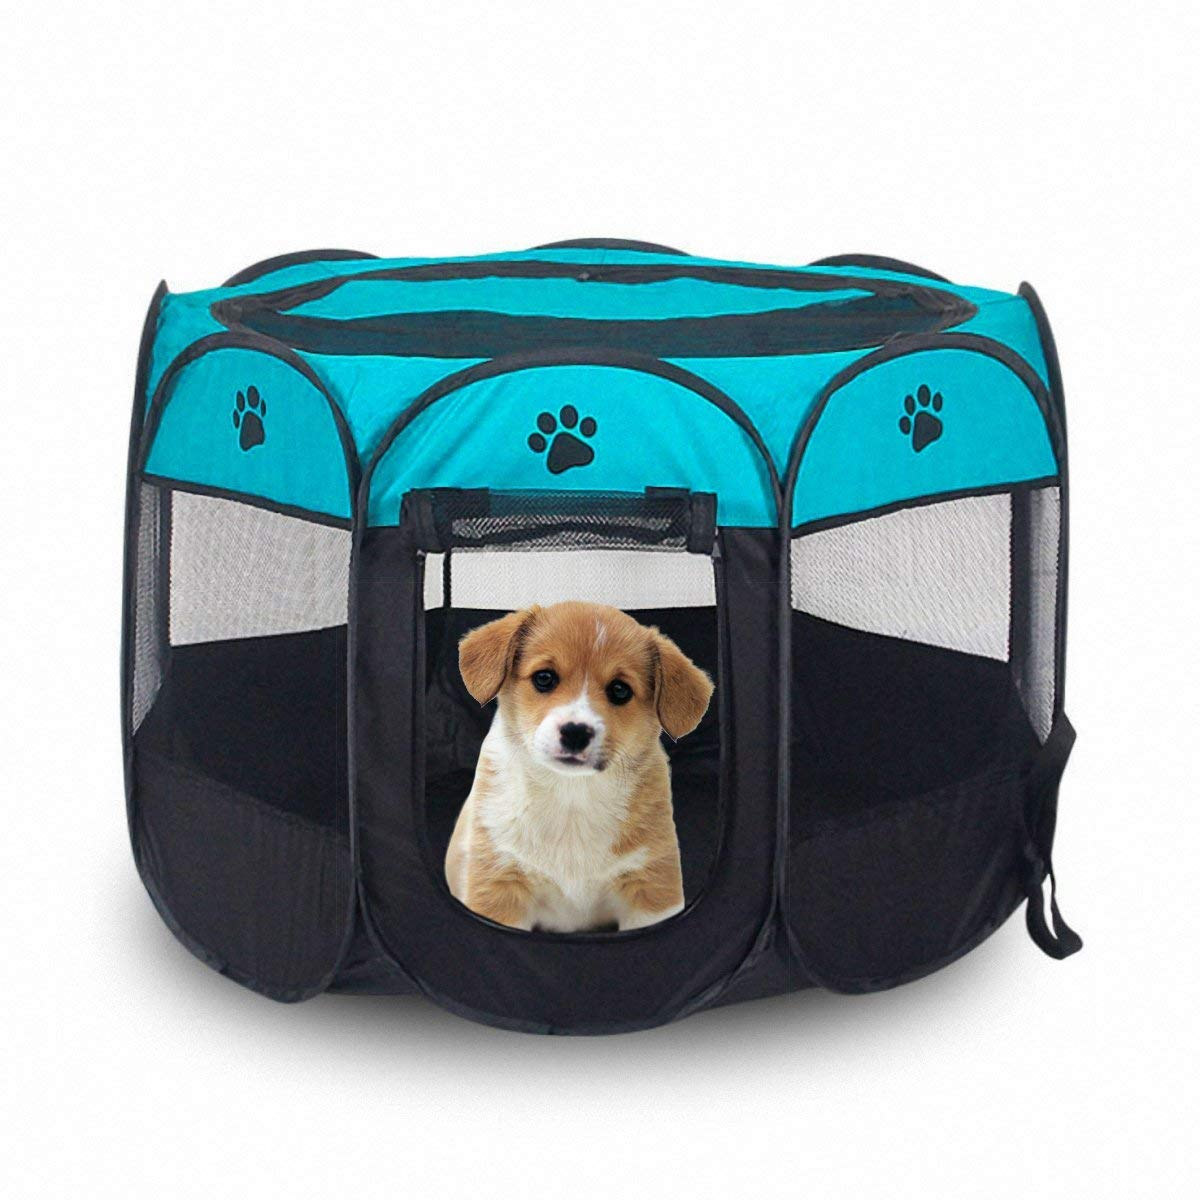 bluee L bluee L MOIMK Pet Portable Foldable Playpen, Exercise 8-Panel Kennel Mesh Shade Cover Indoor Outdoor Tent Fence For Dogs Cats